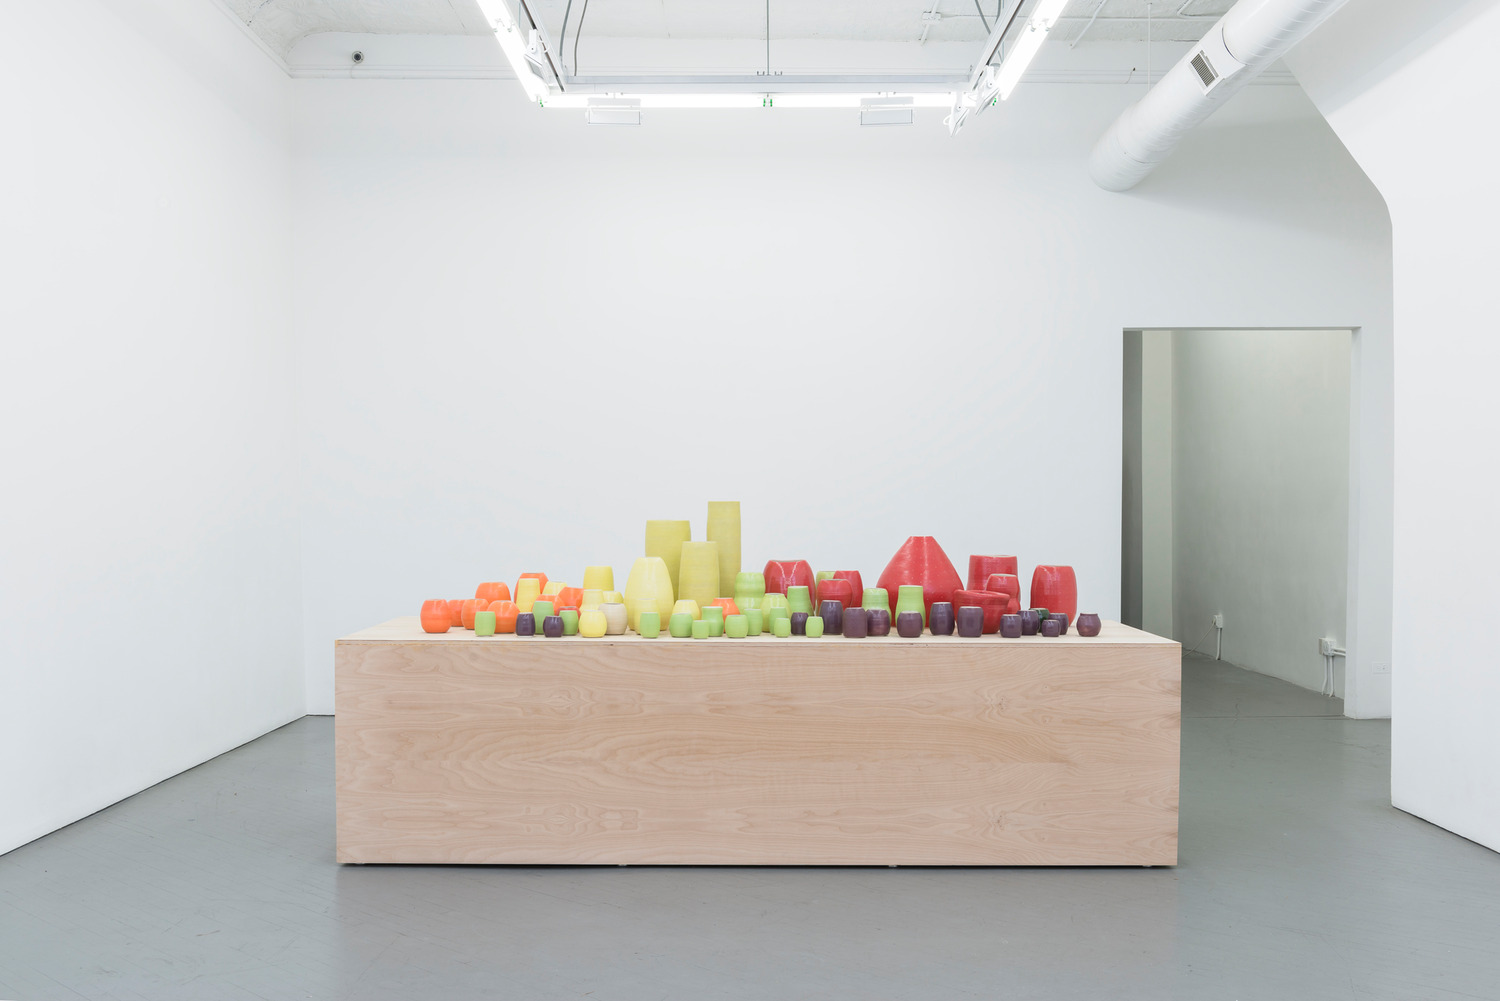 Installation view, Shane Campbell Gallery, Chicago, 2014